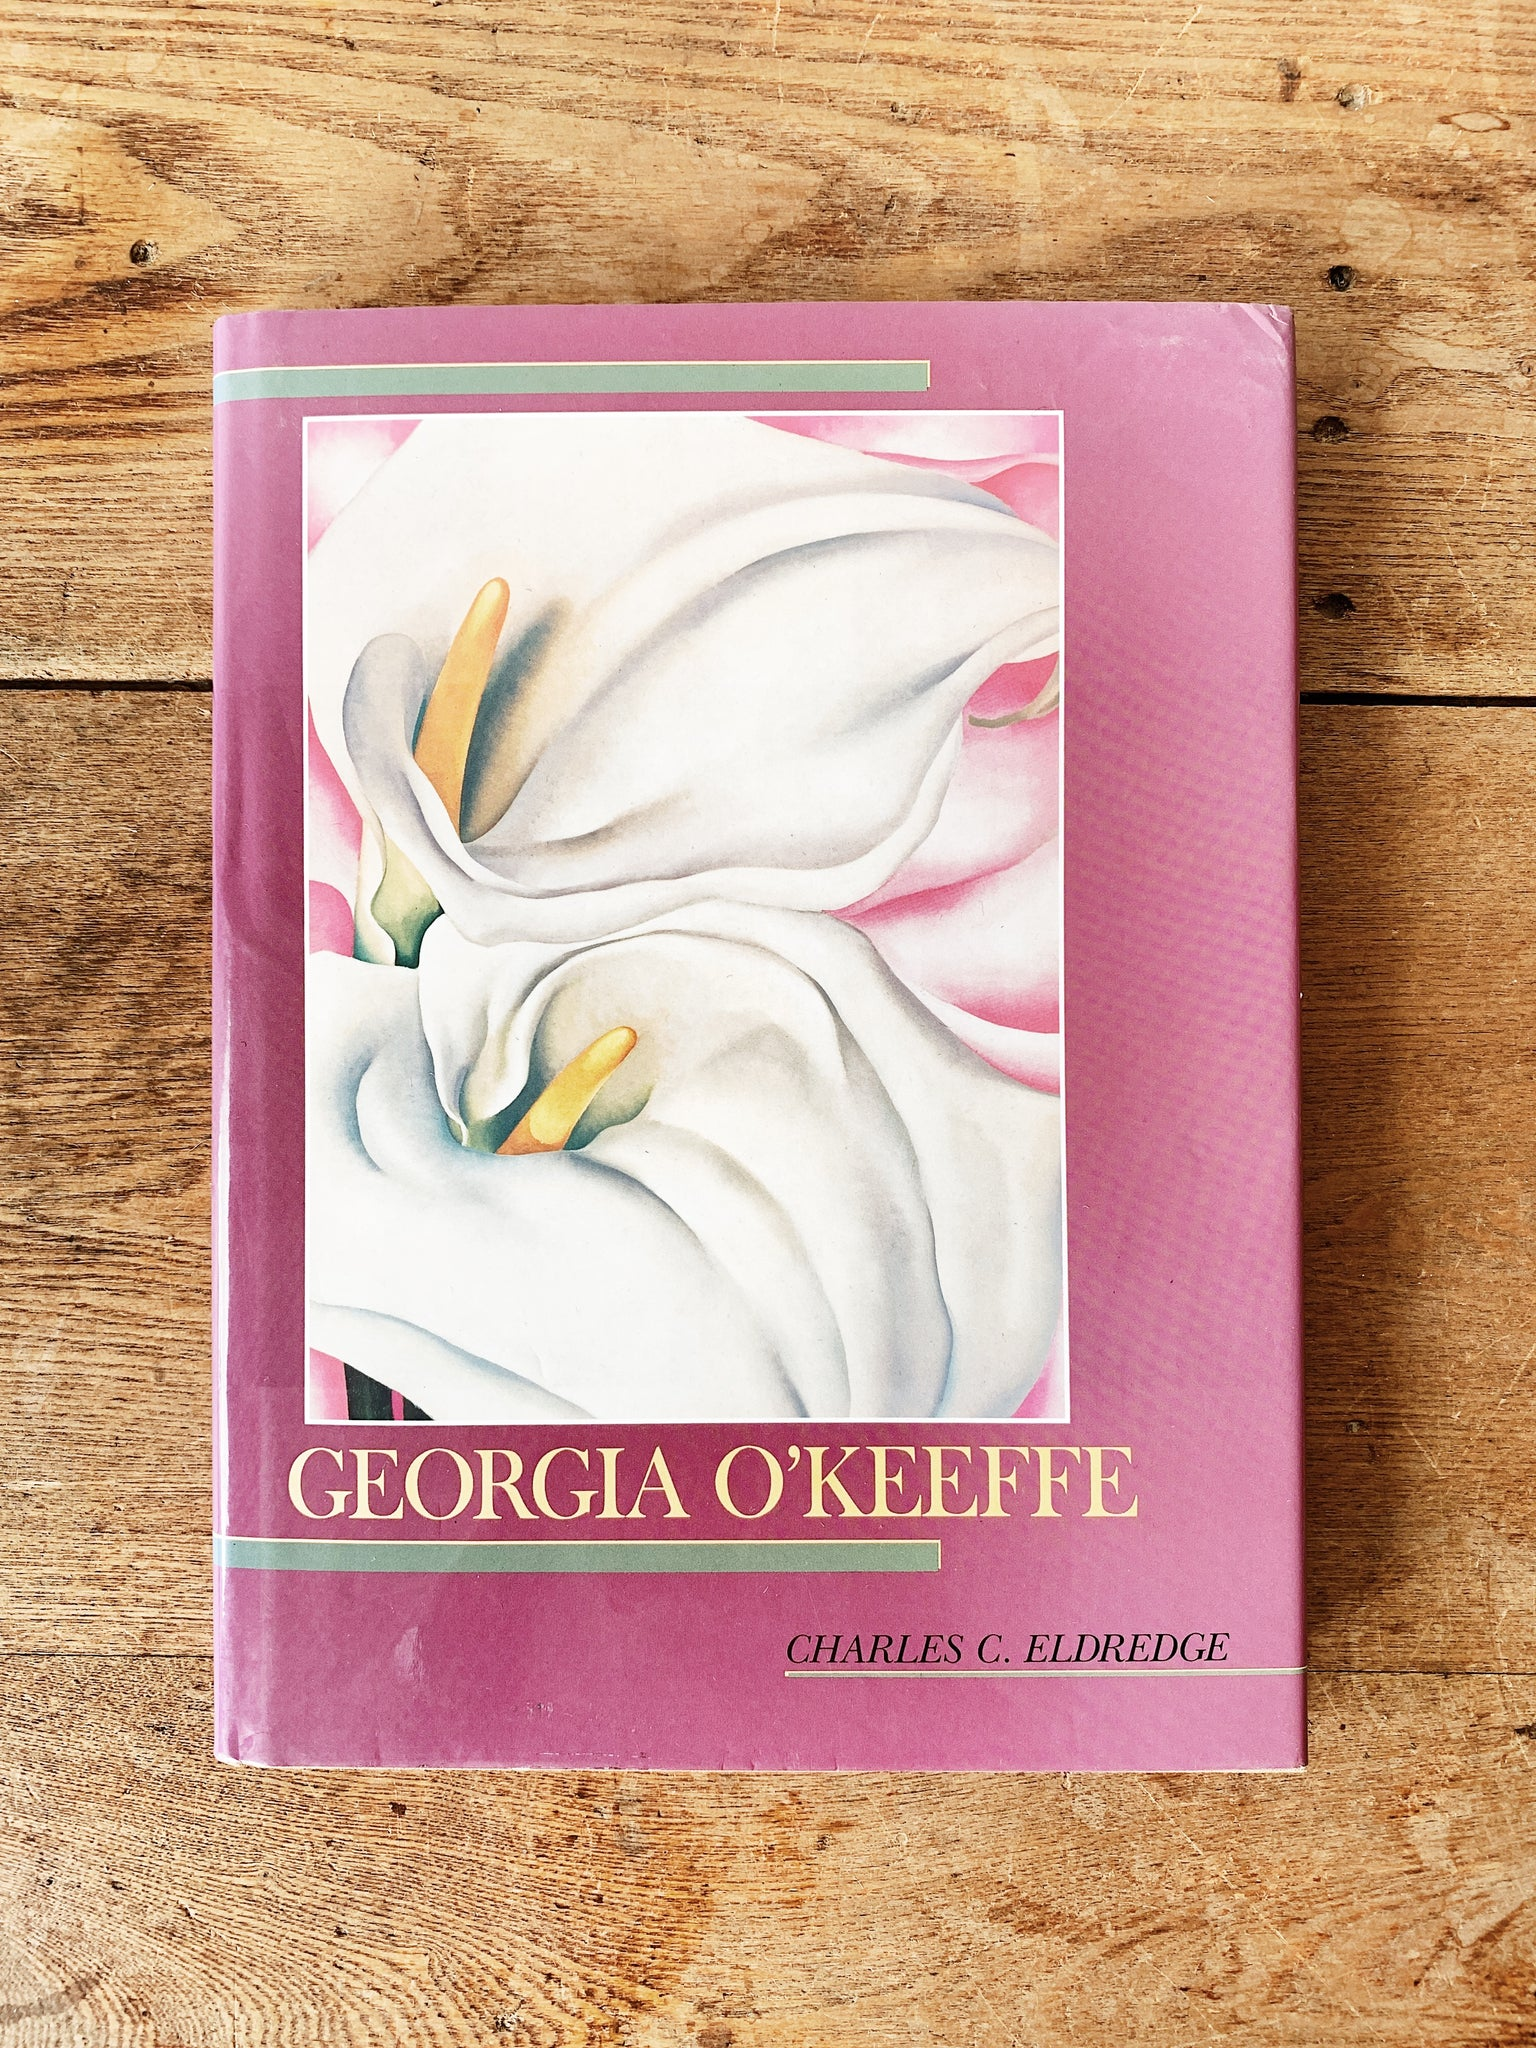 Vintage Georgia O'keeffe Hard Bound Art Book